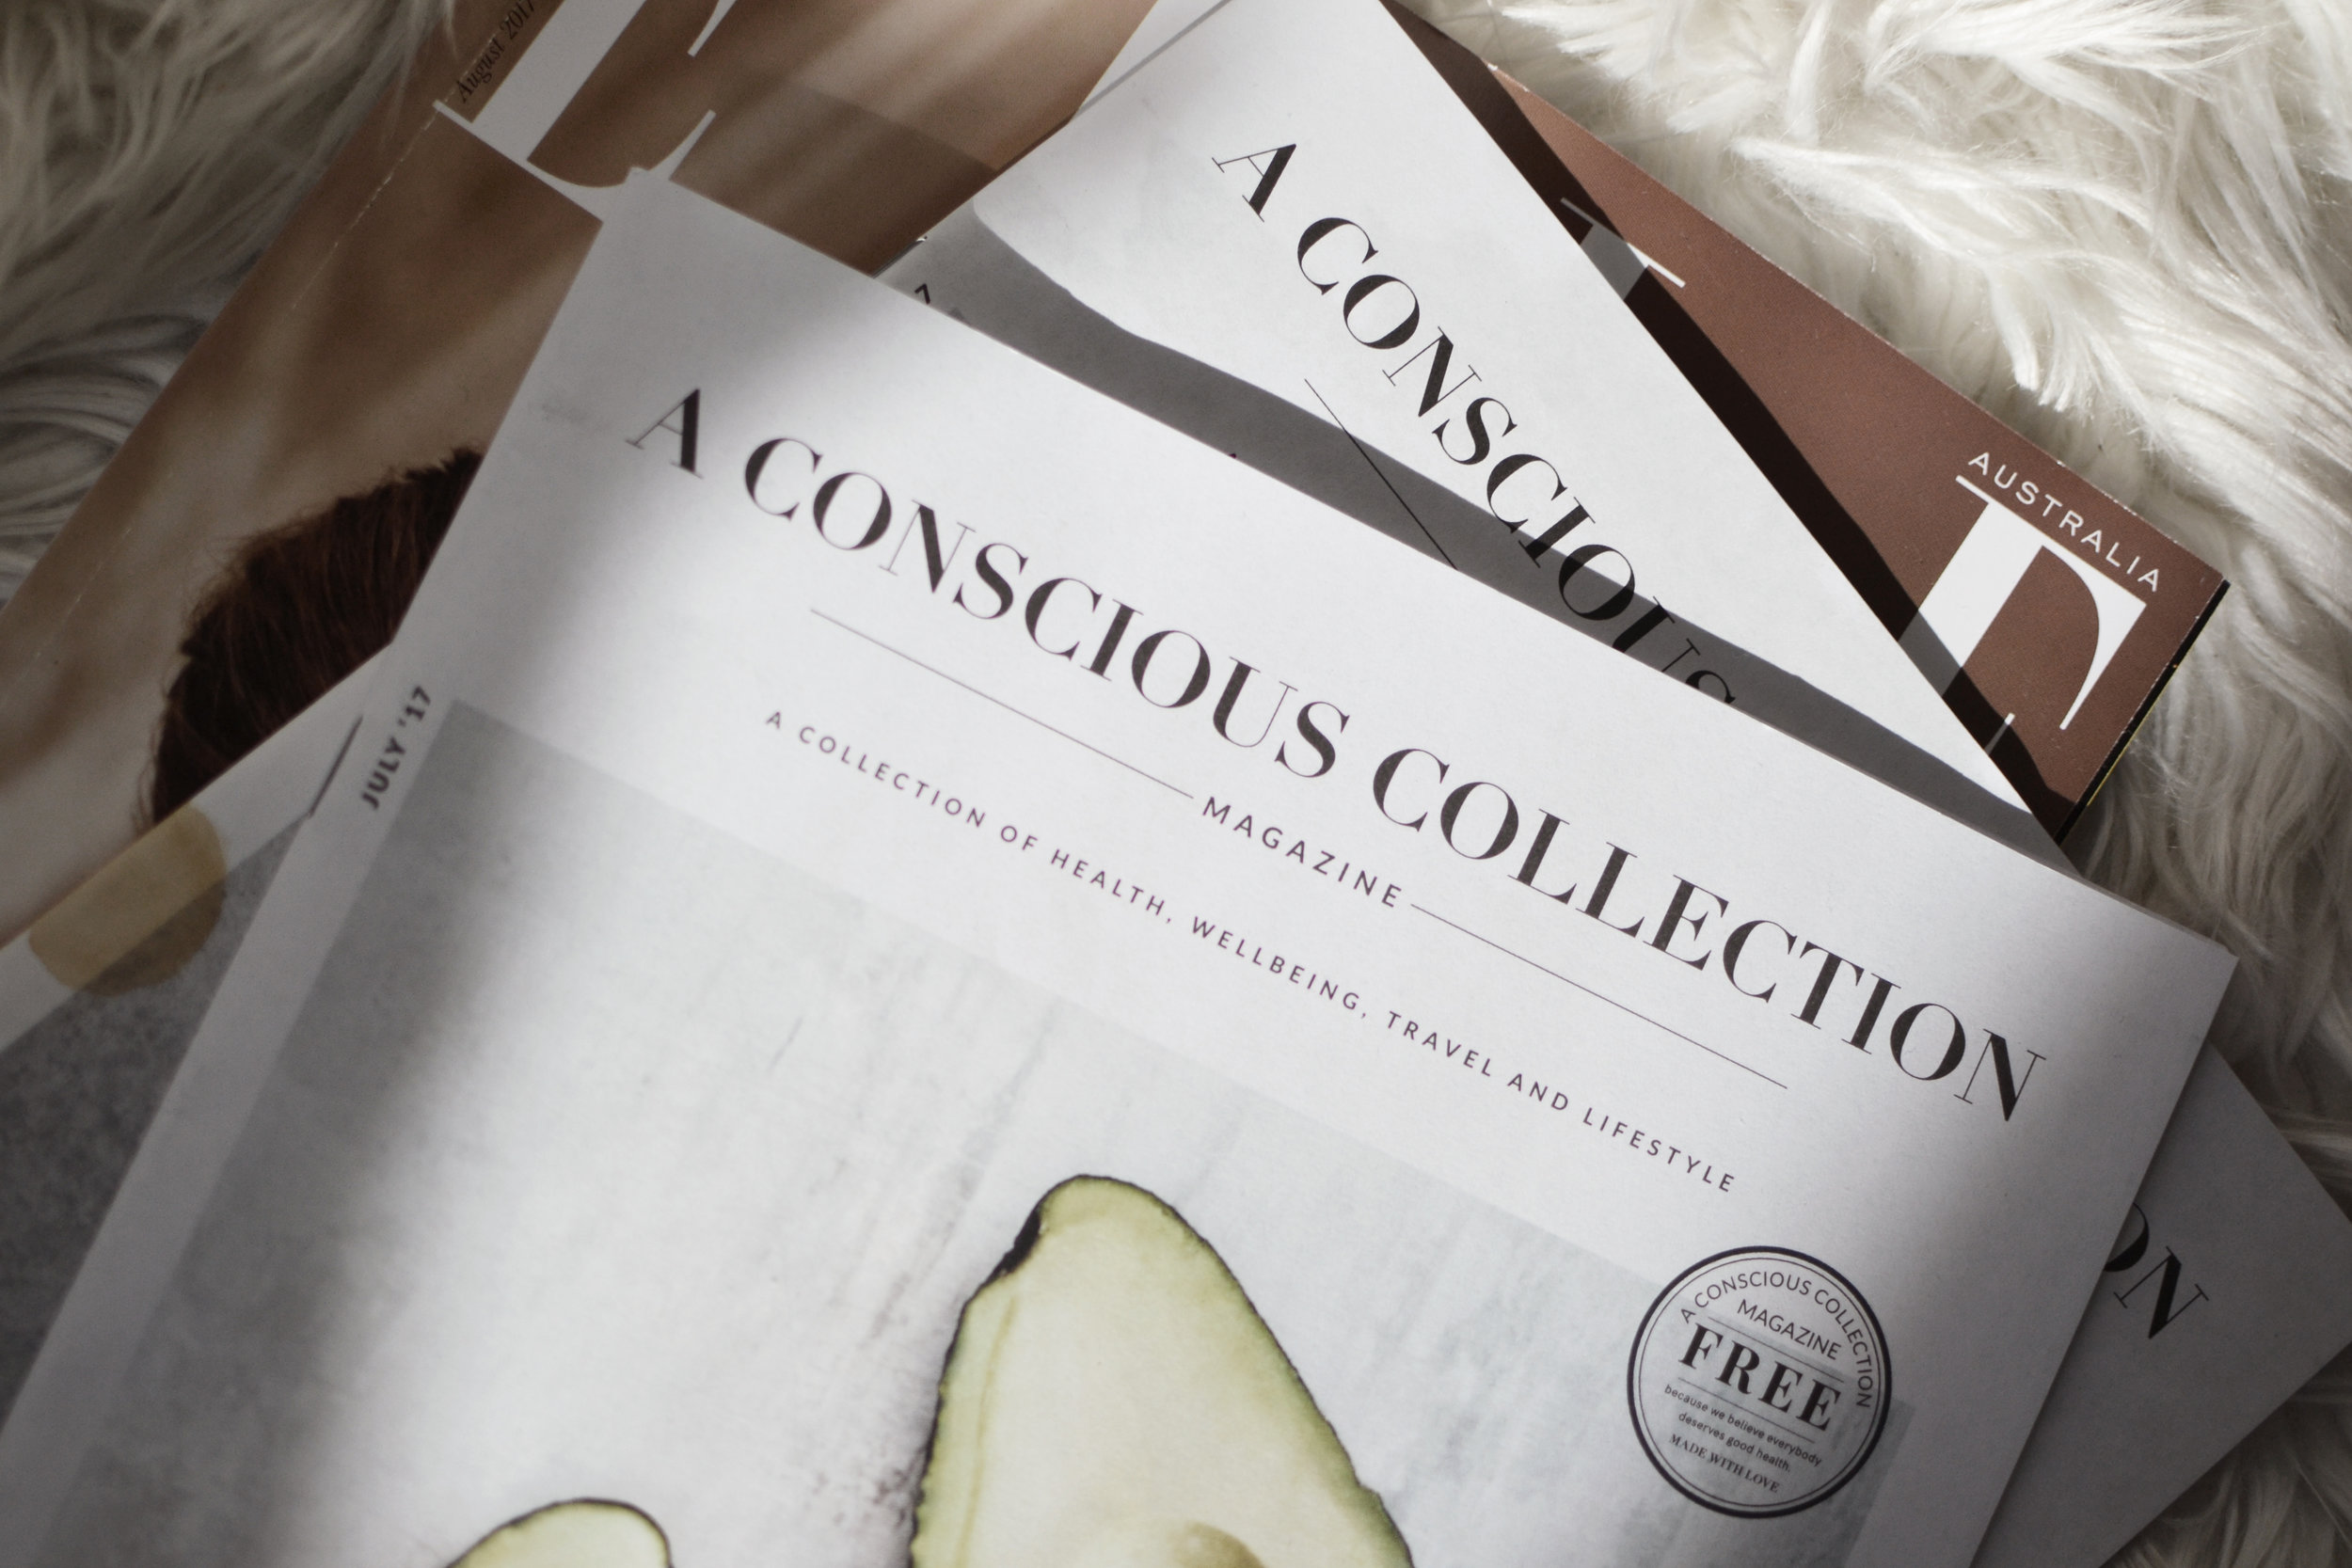 The Eve A Conscious Collection 2